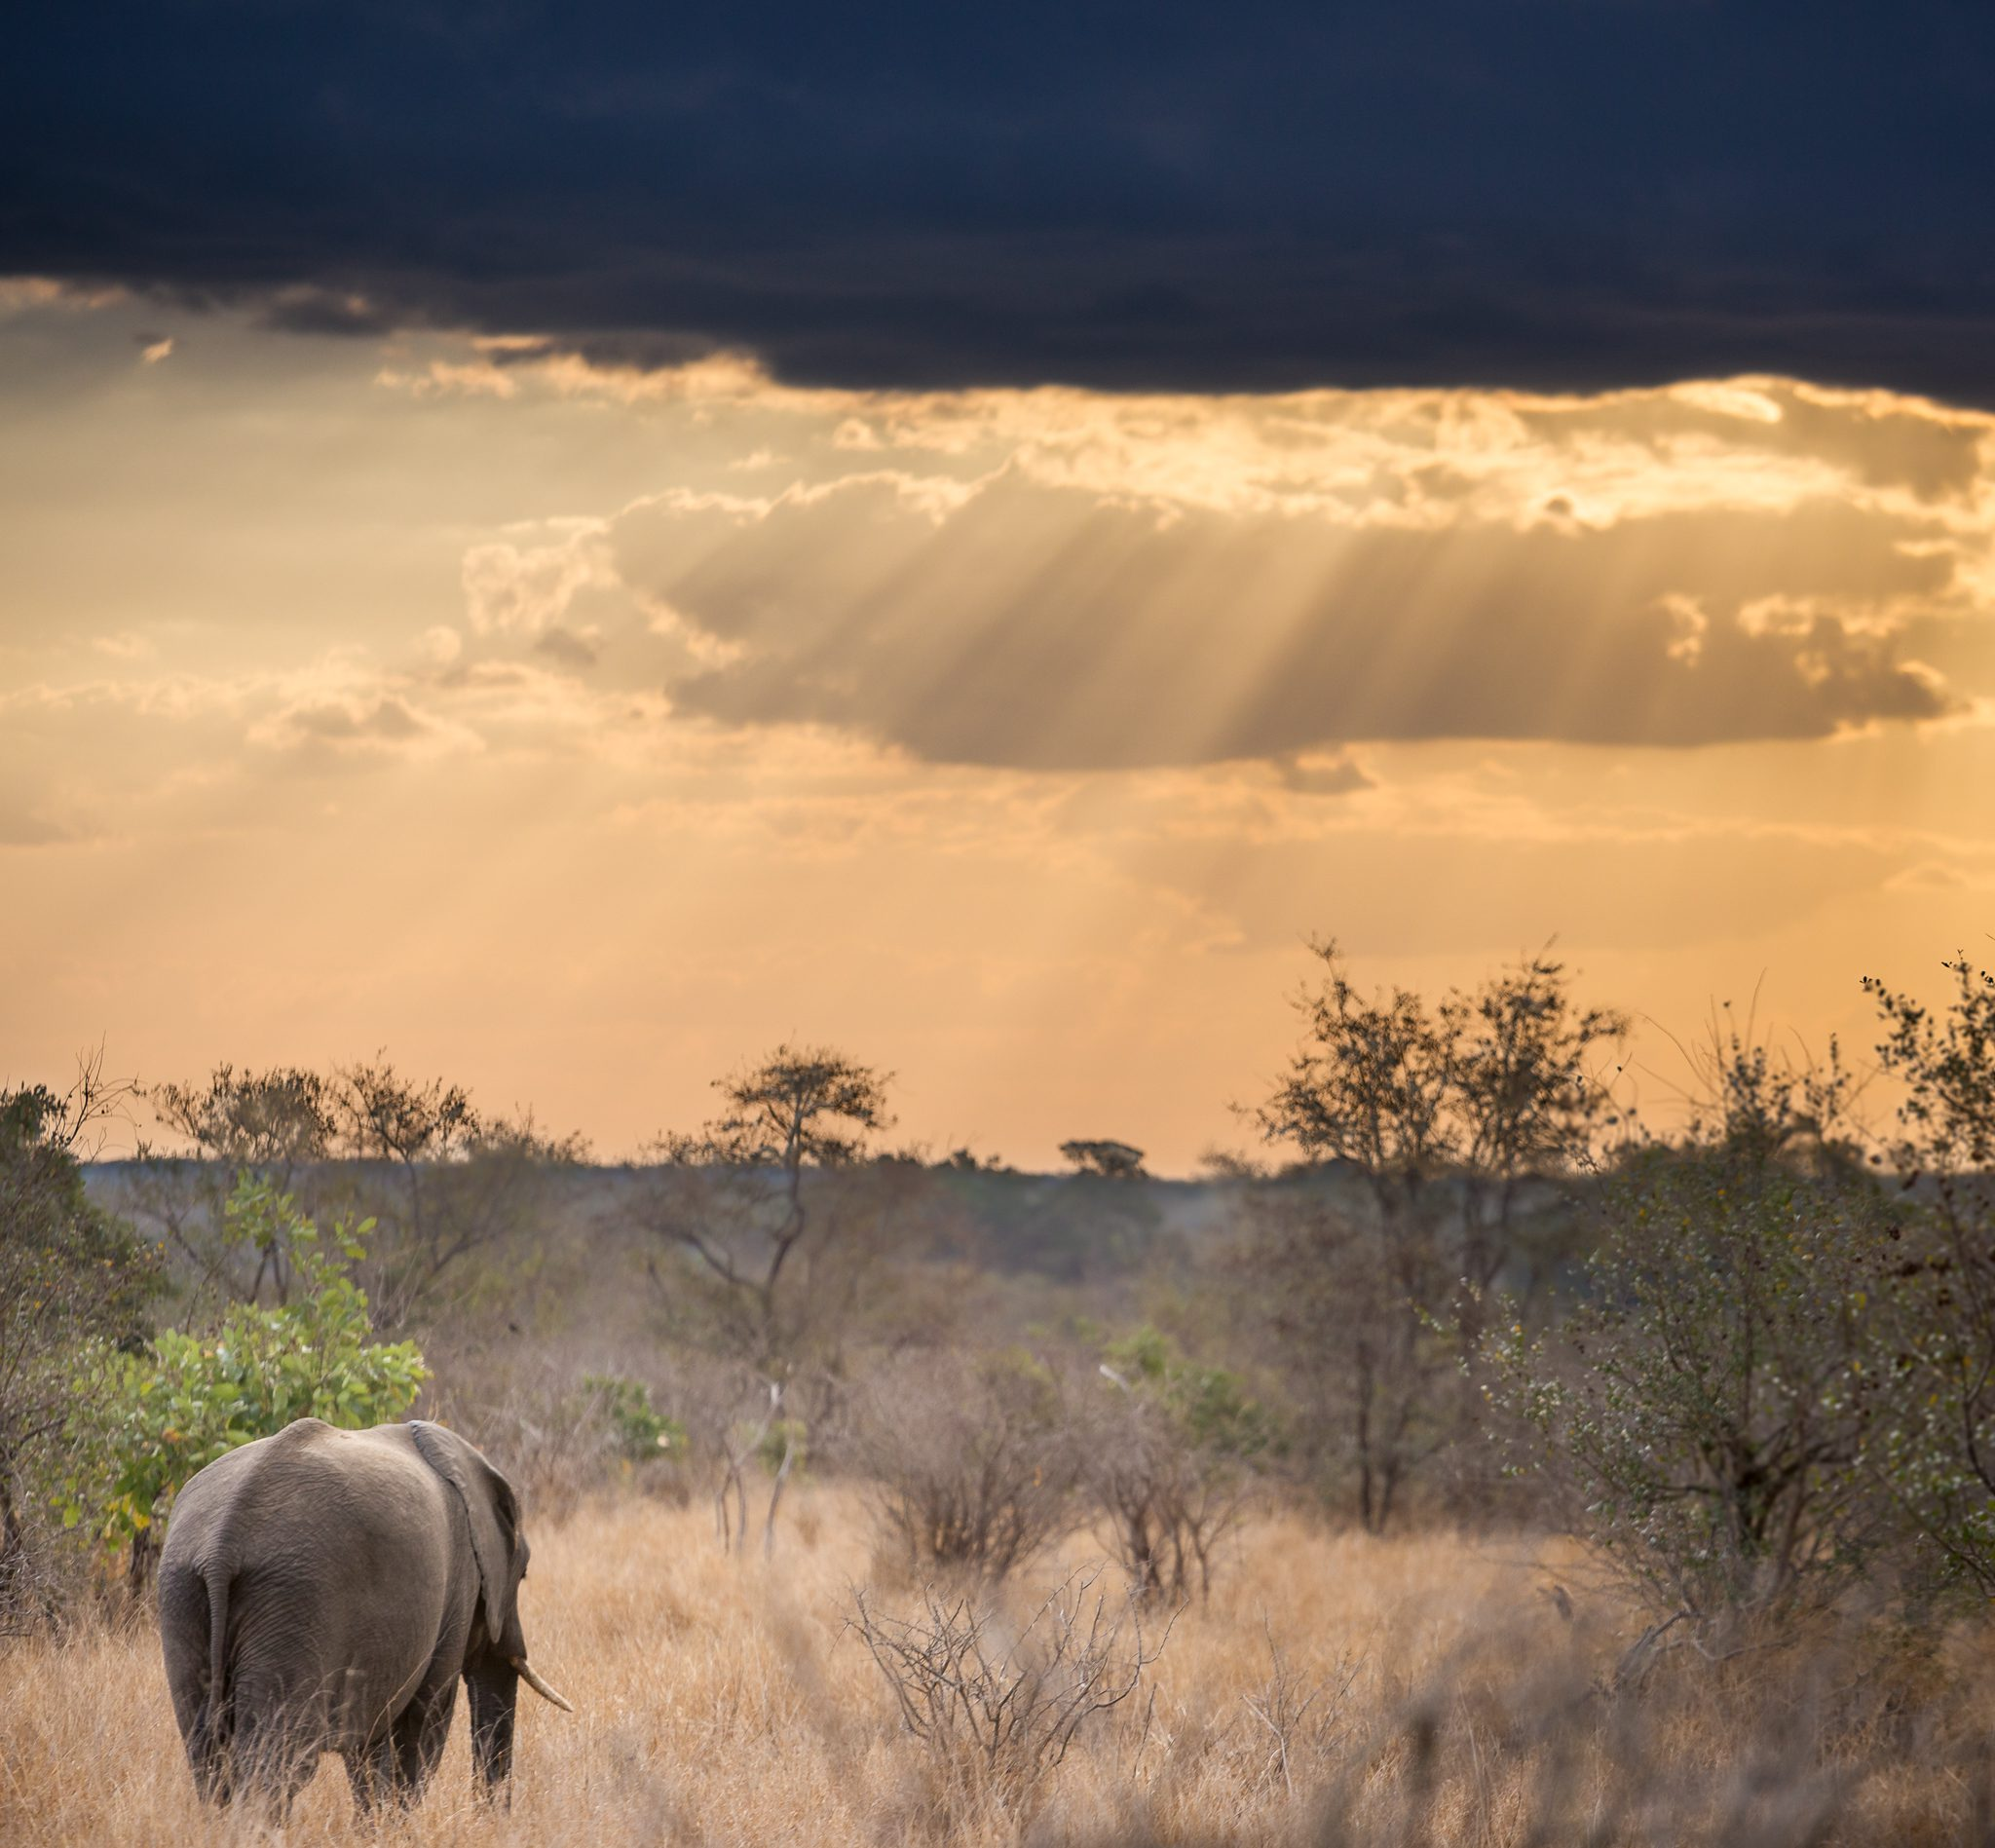 Does this view remind you of any movie/cartoon scene :)?!There are a lot of elephants in Kruger. Around 17.000. But moments like that, you just can't get enough of them!